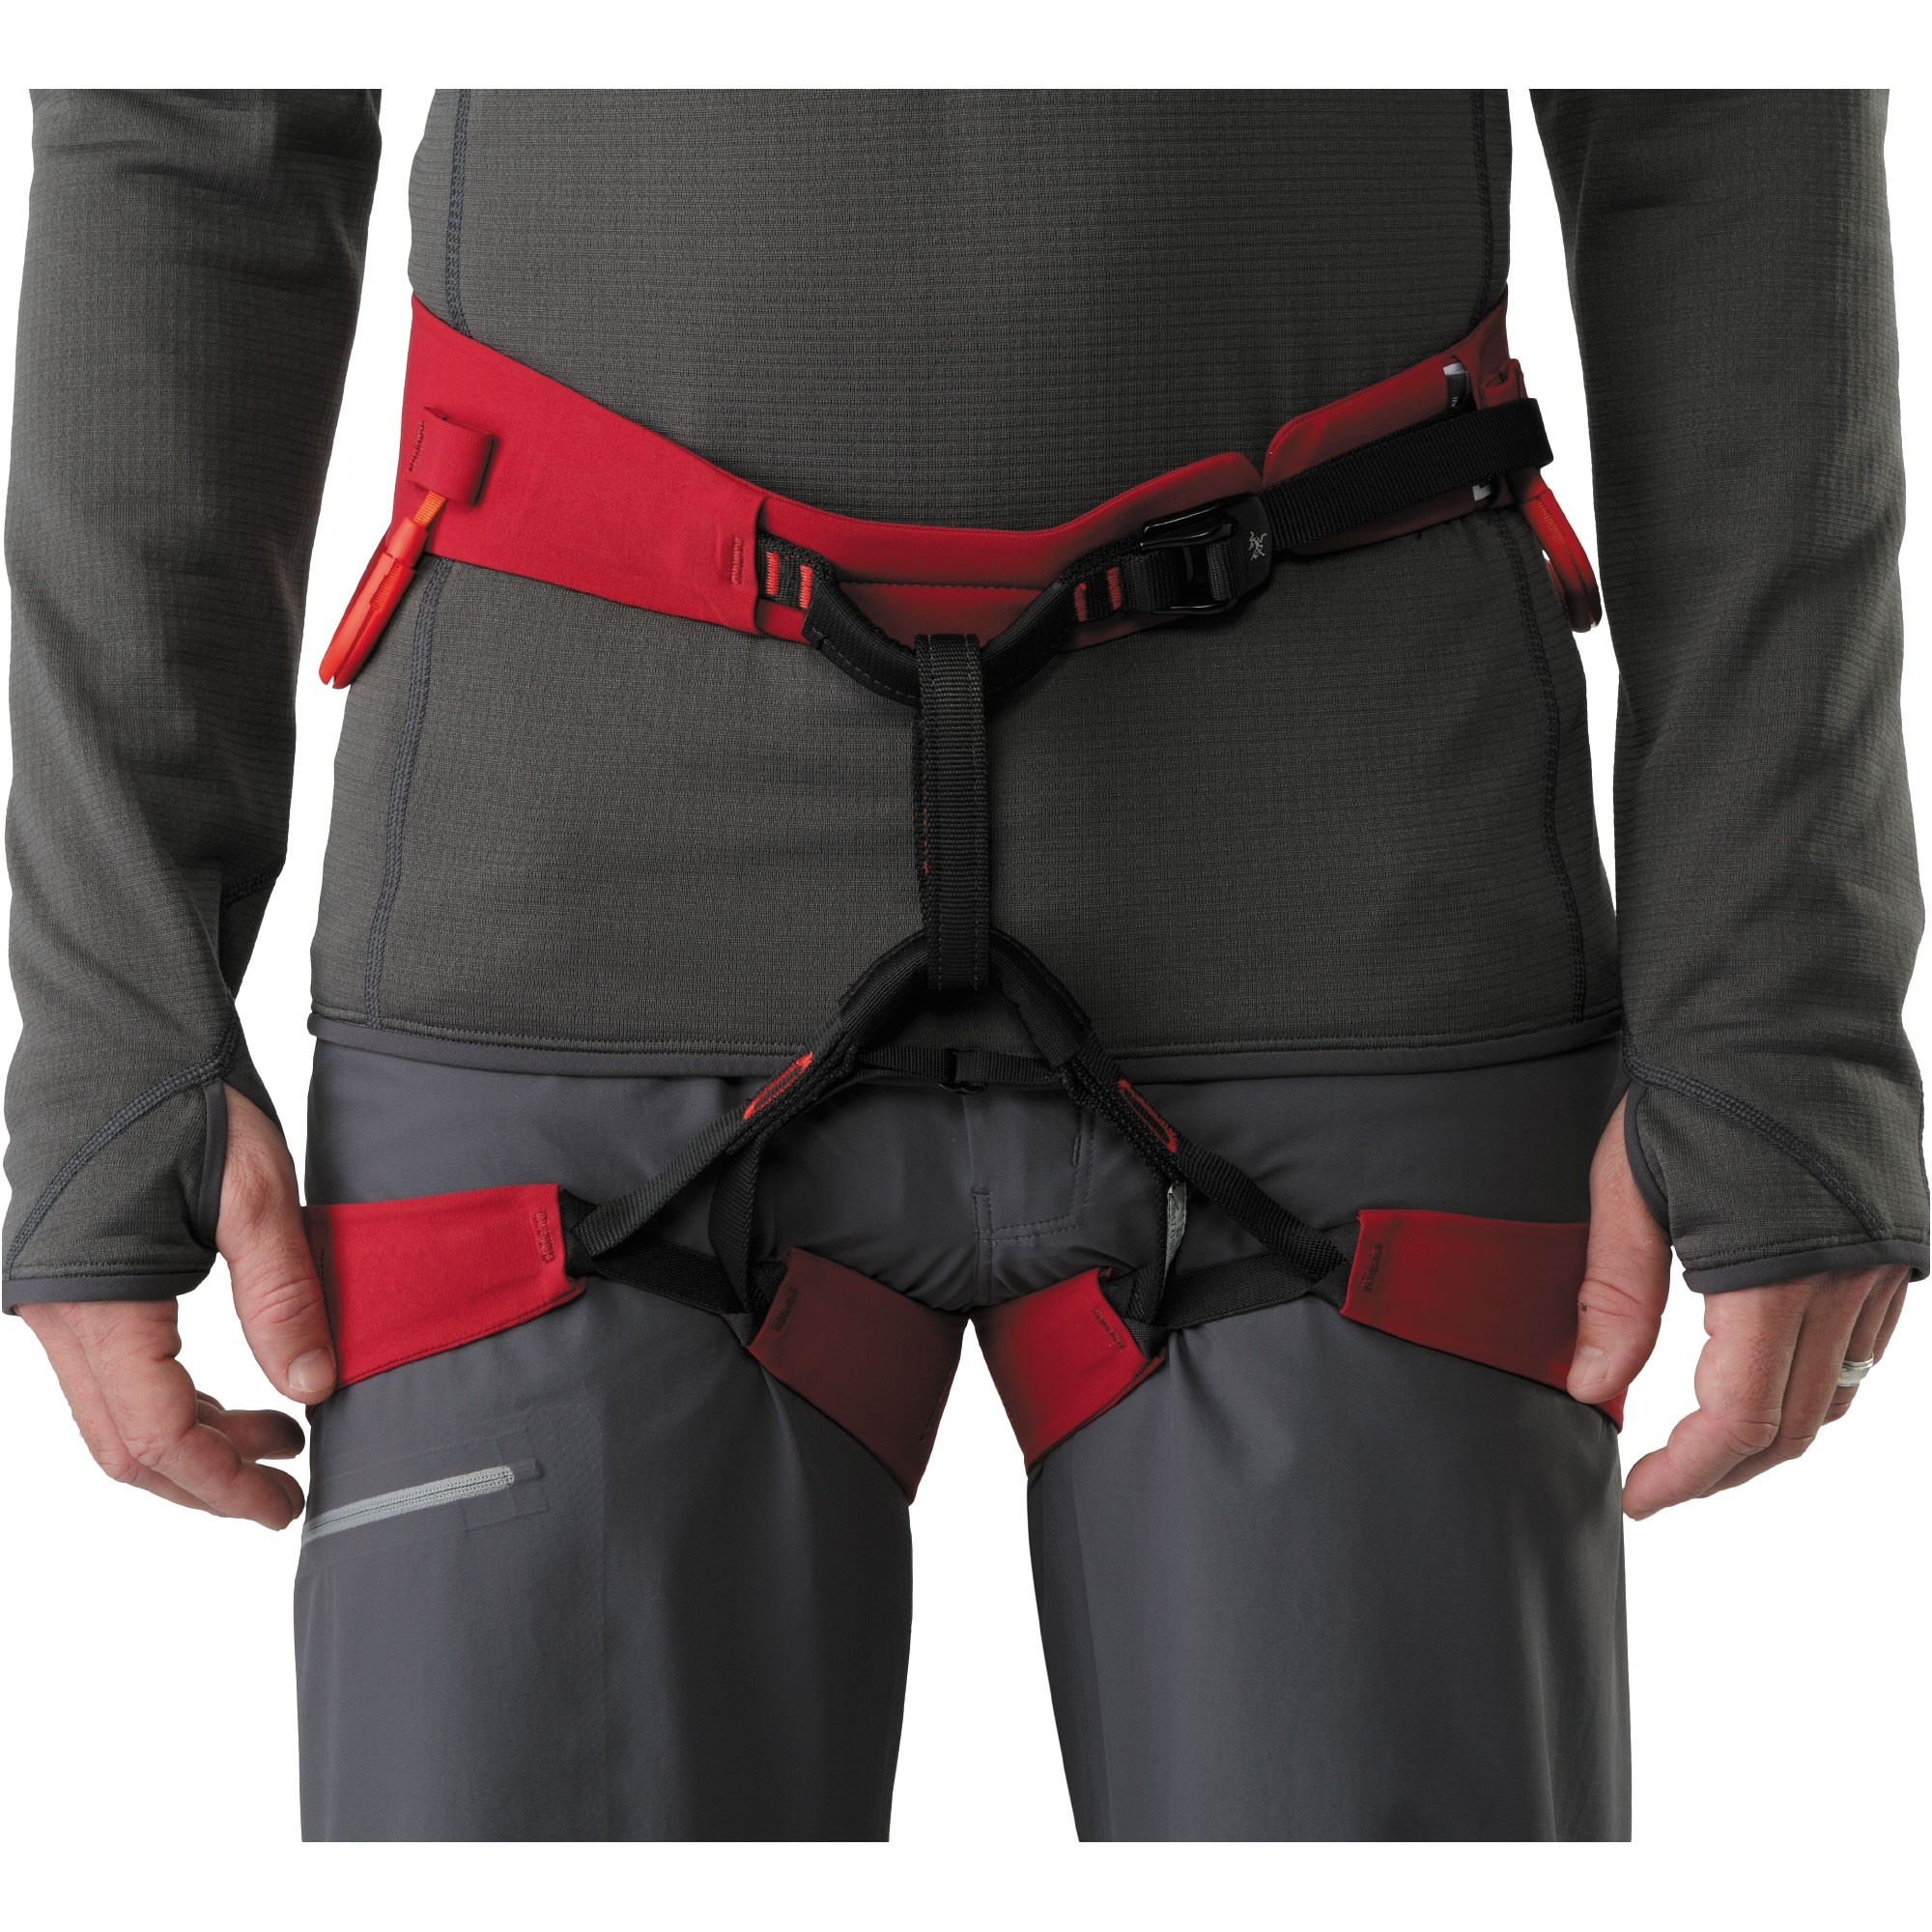 Arcteryx-15994-FL-365-Harness-M-Red-Beach-Flare-Front-S18